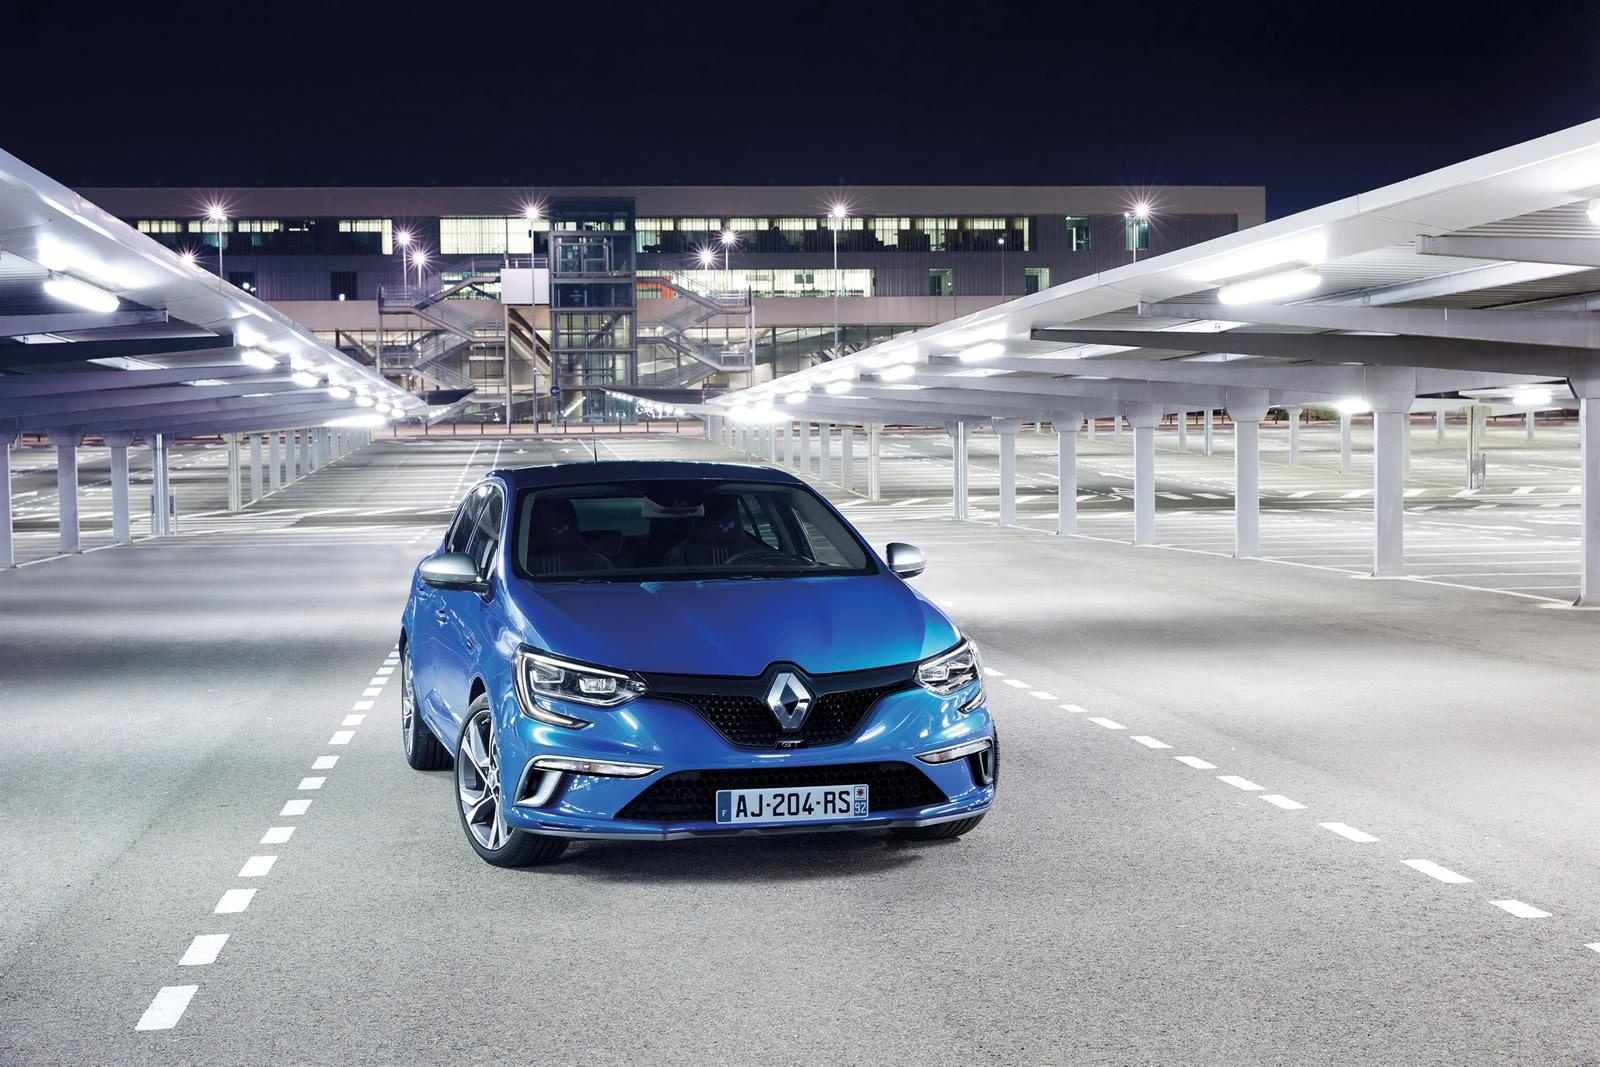 hybrid-renault-megane-confirmed-for-2017-with-dci-diesel-engine-100384_1